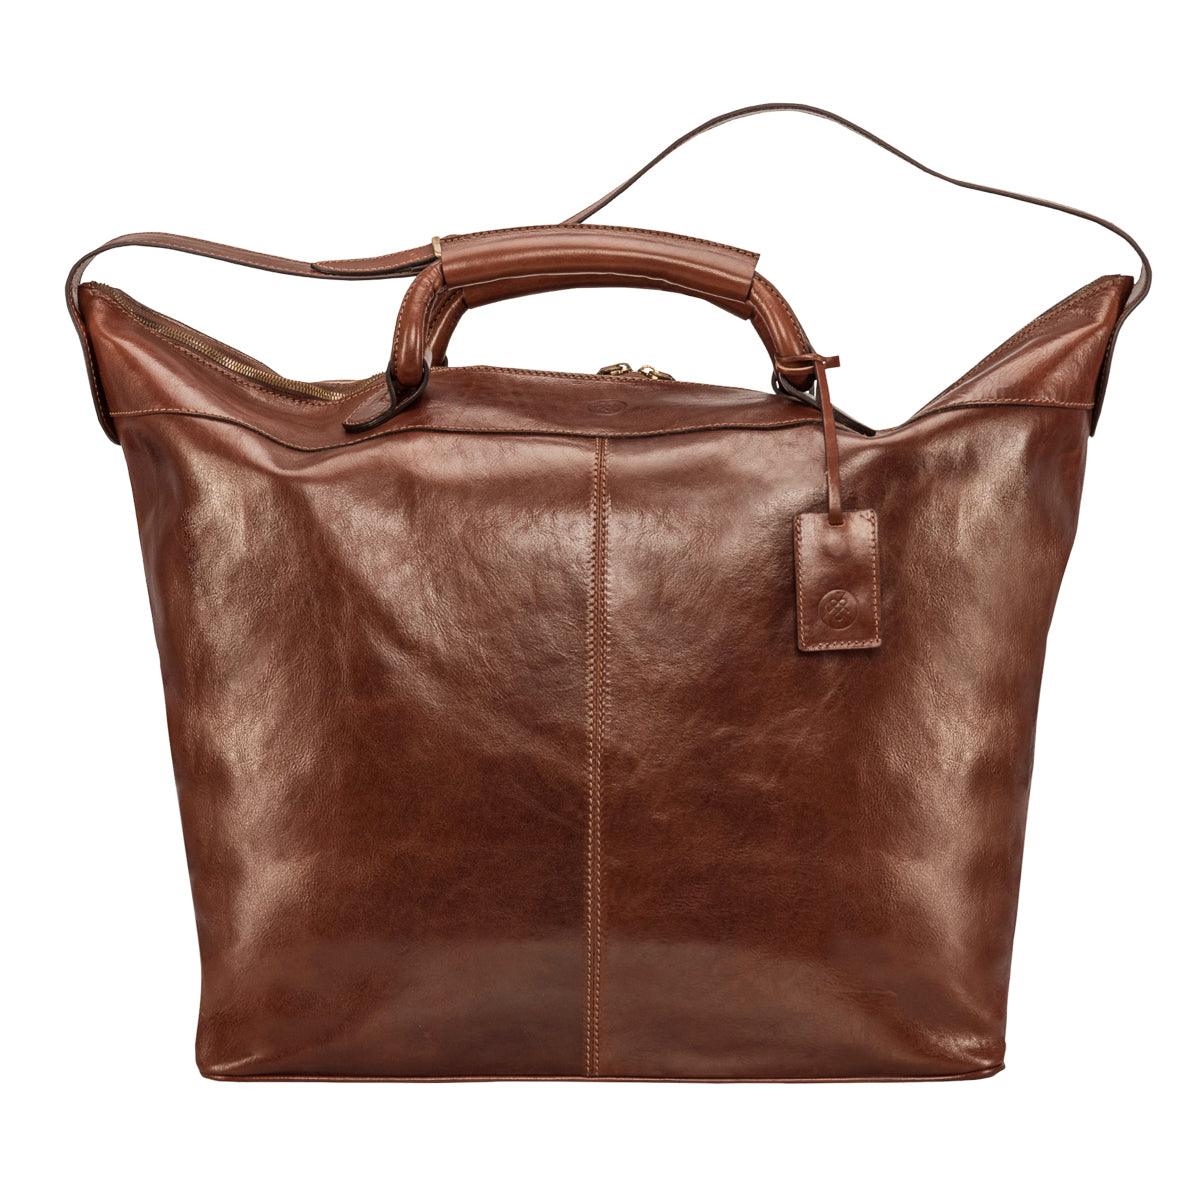 Image 1 of the 'Fabrizio' Chestnut Veg-Tanned Leather Holdall